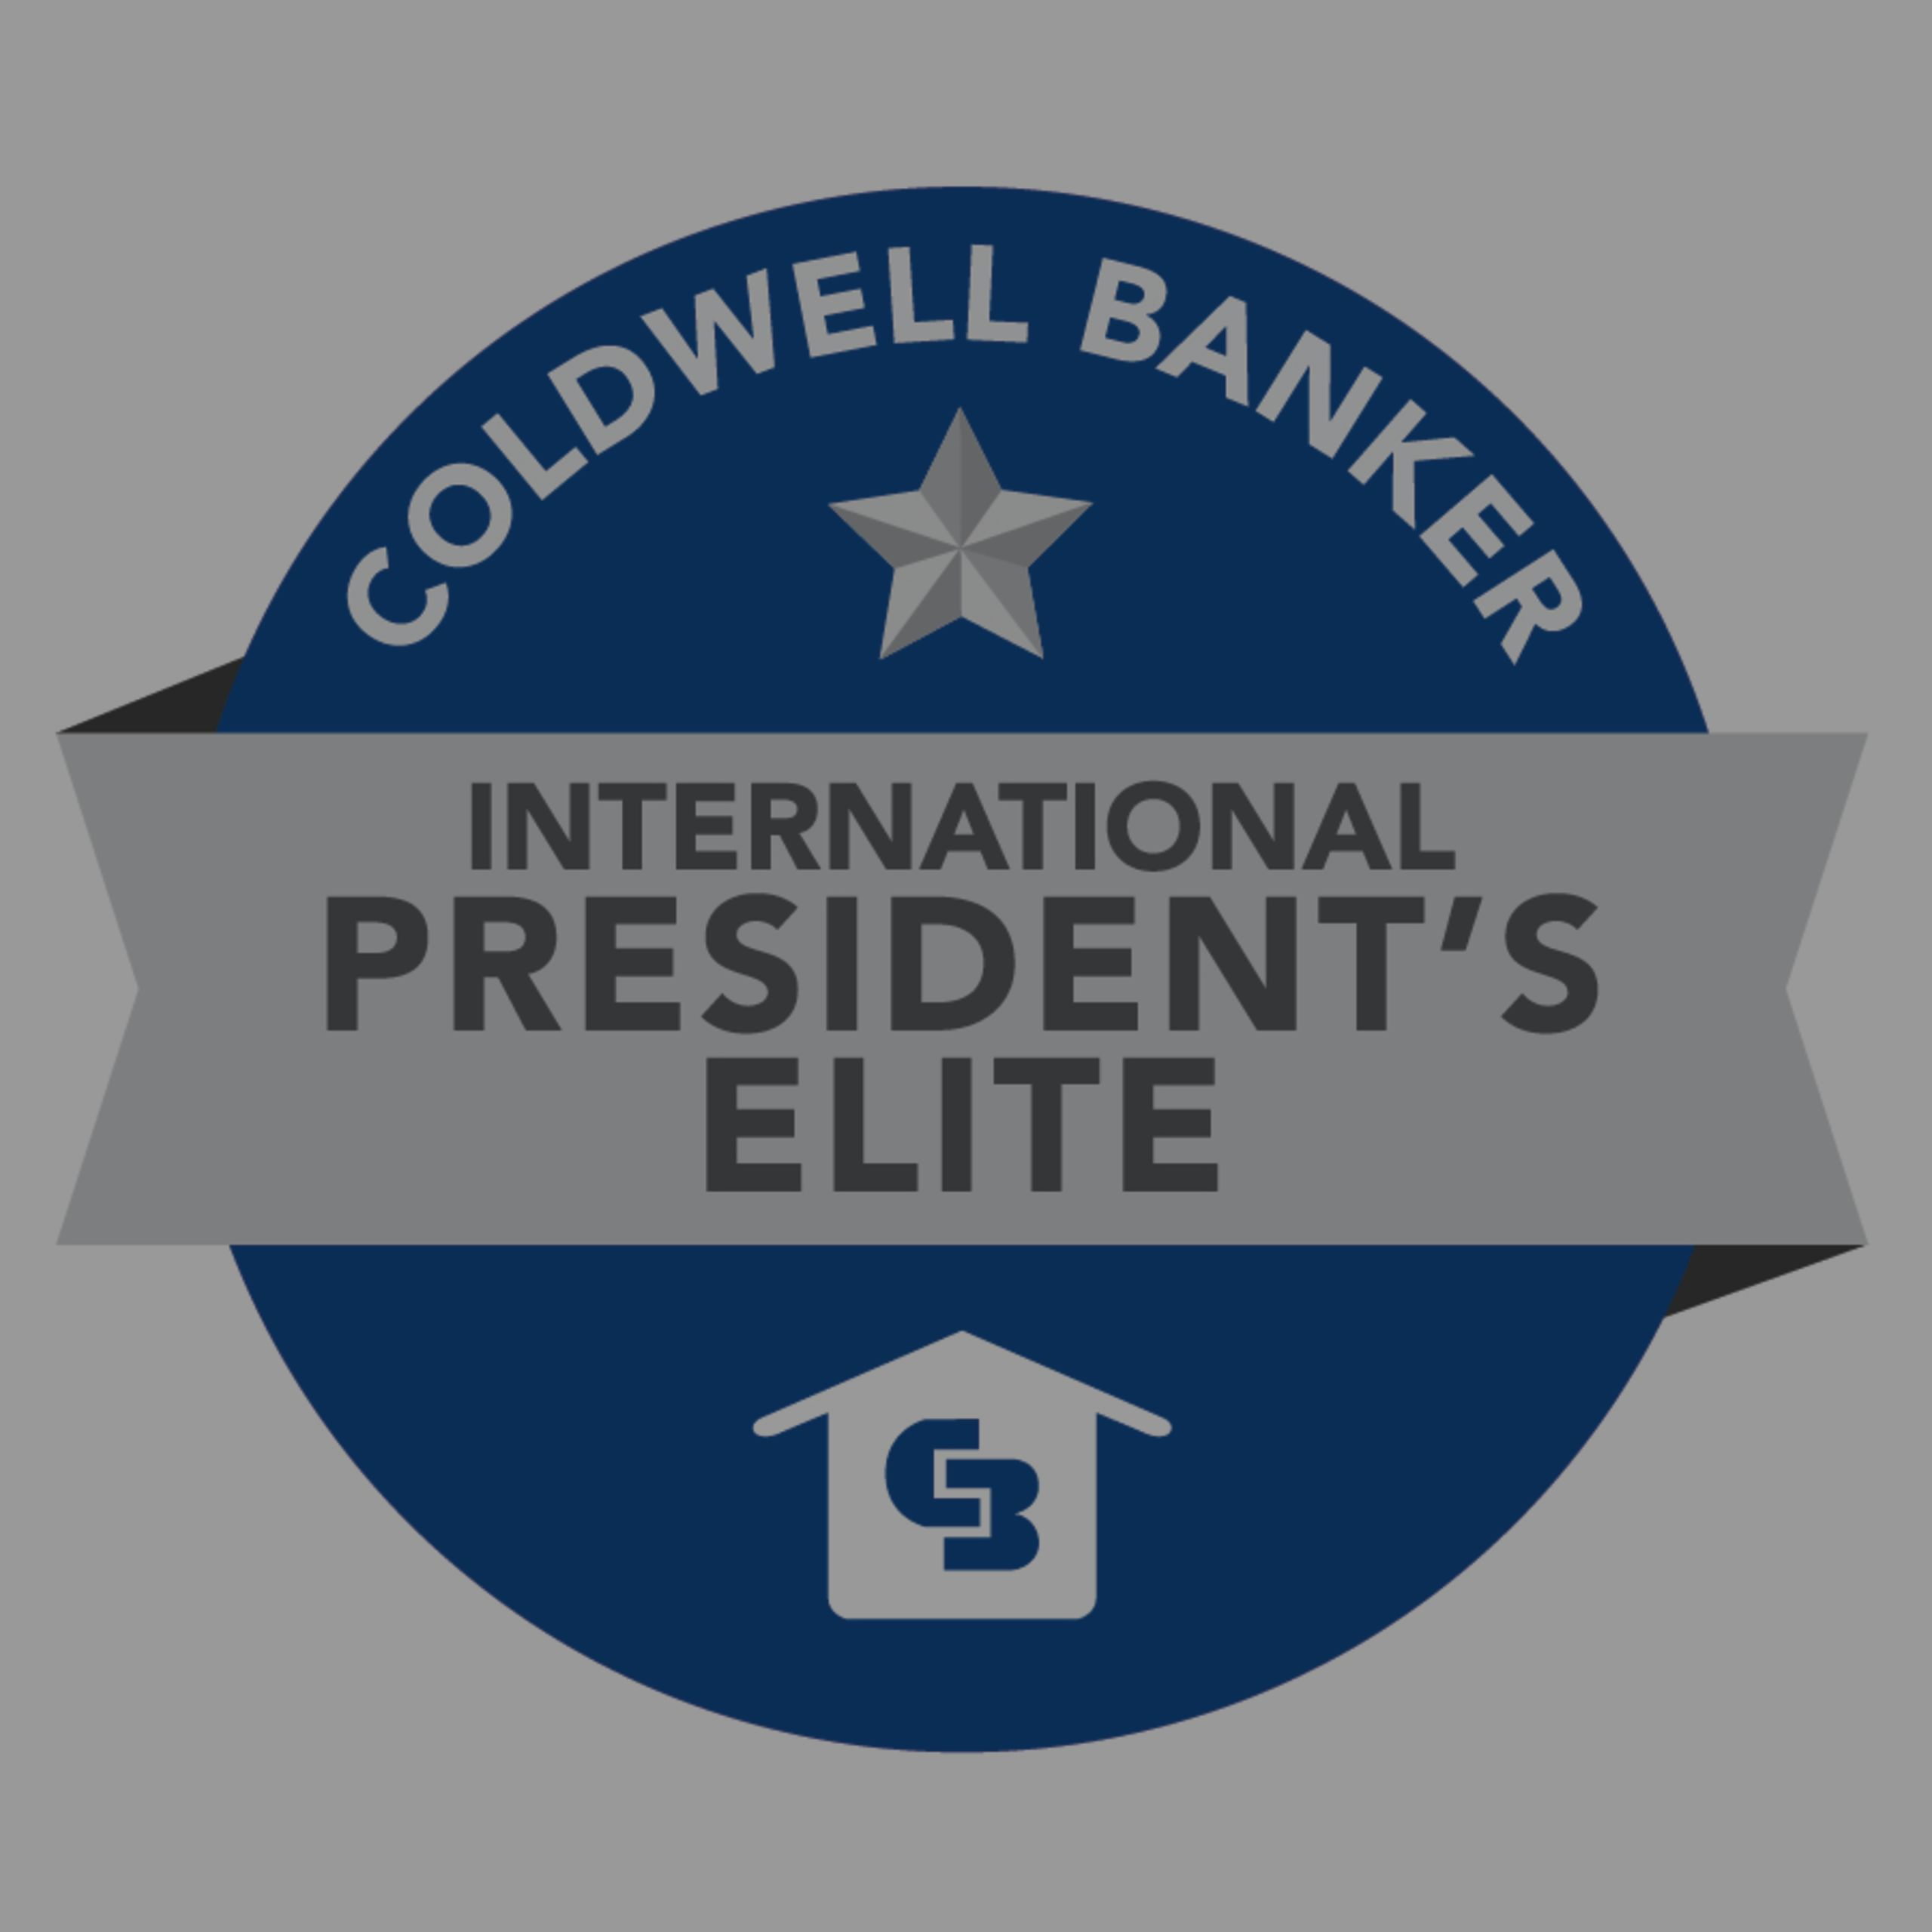 Bruce Clark Awarded Coldwell Banker International President's Elite Award | Real Estate Agent Orange County